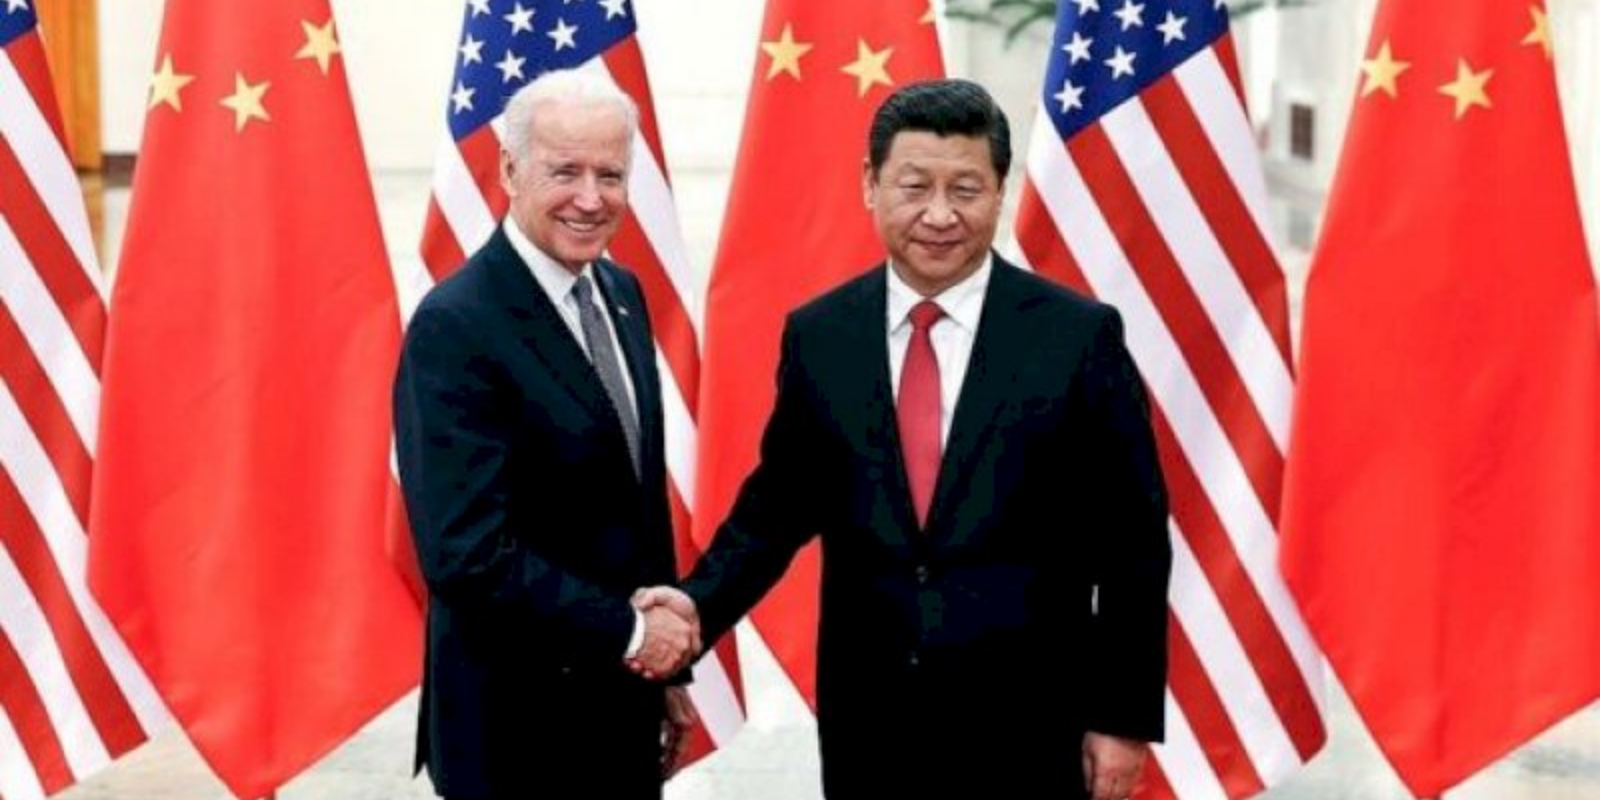 China threatens action against US support of Taiwan, congratulates Biden on win